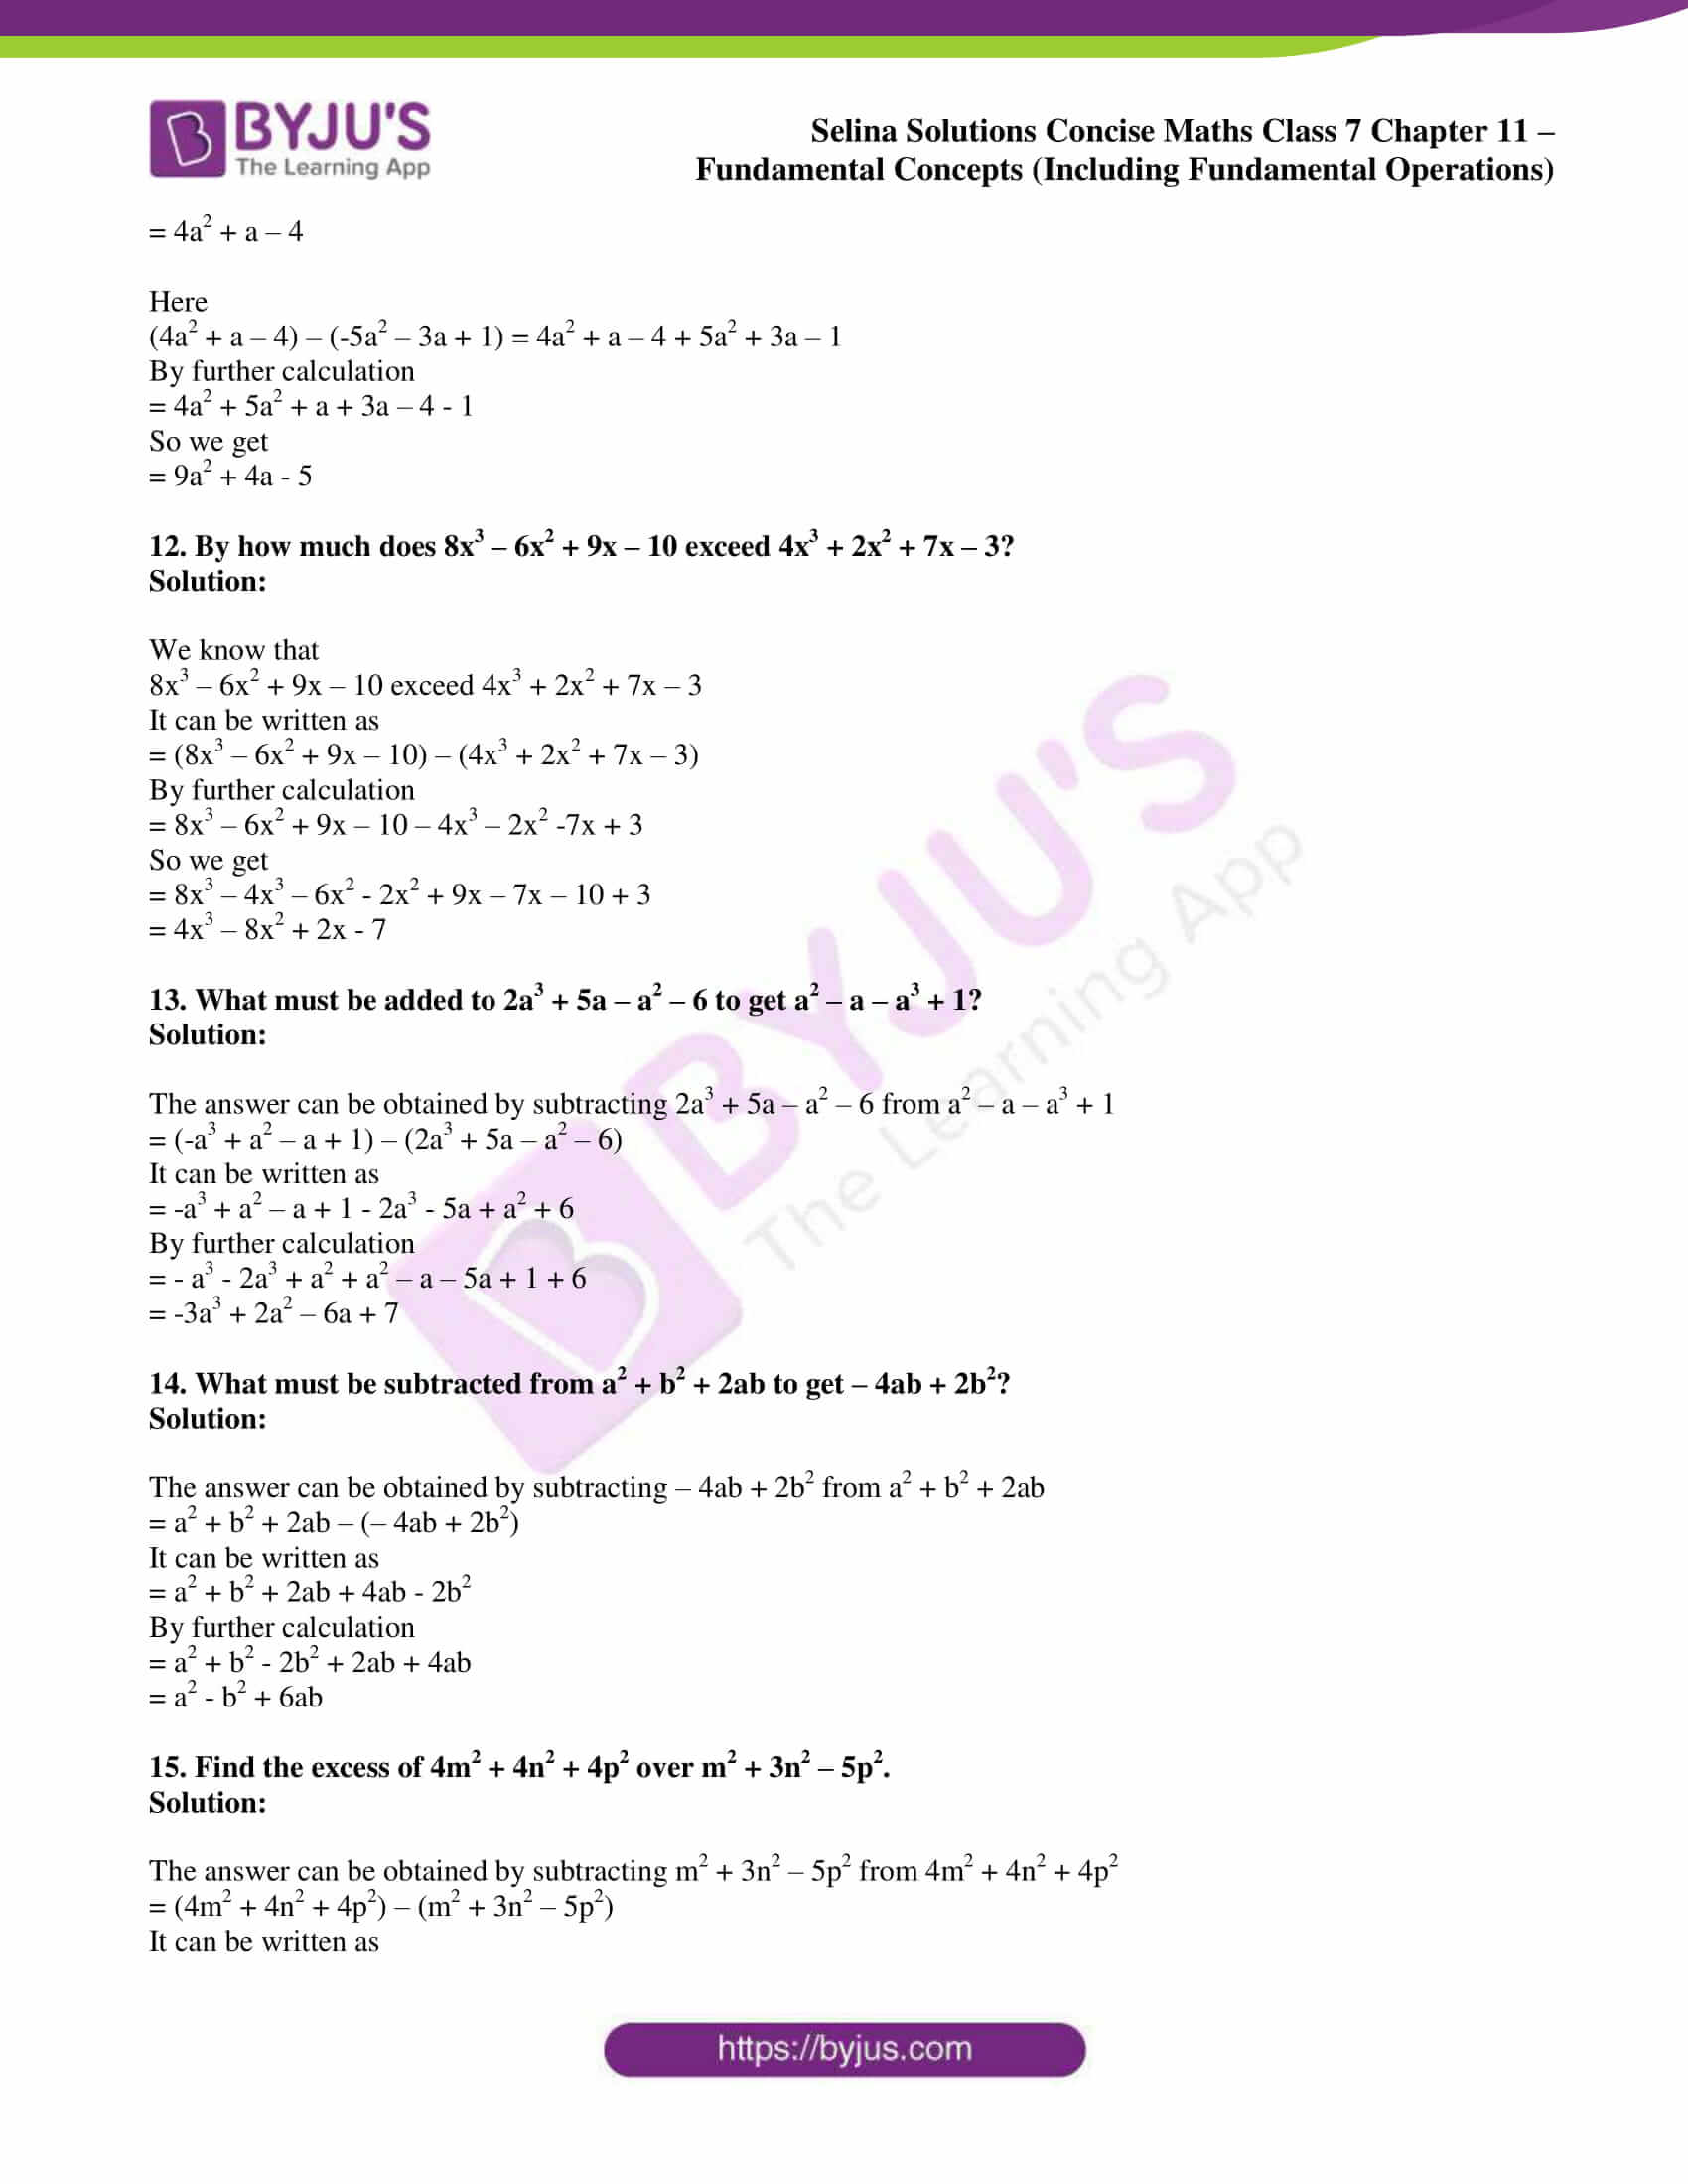 selina solution concise maths class 7 ch 11b 8